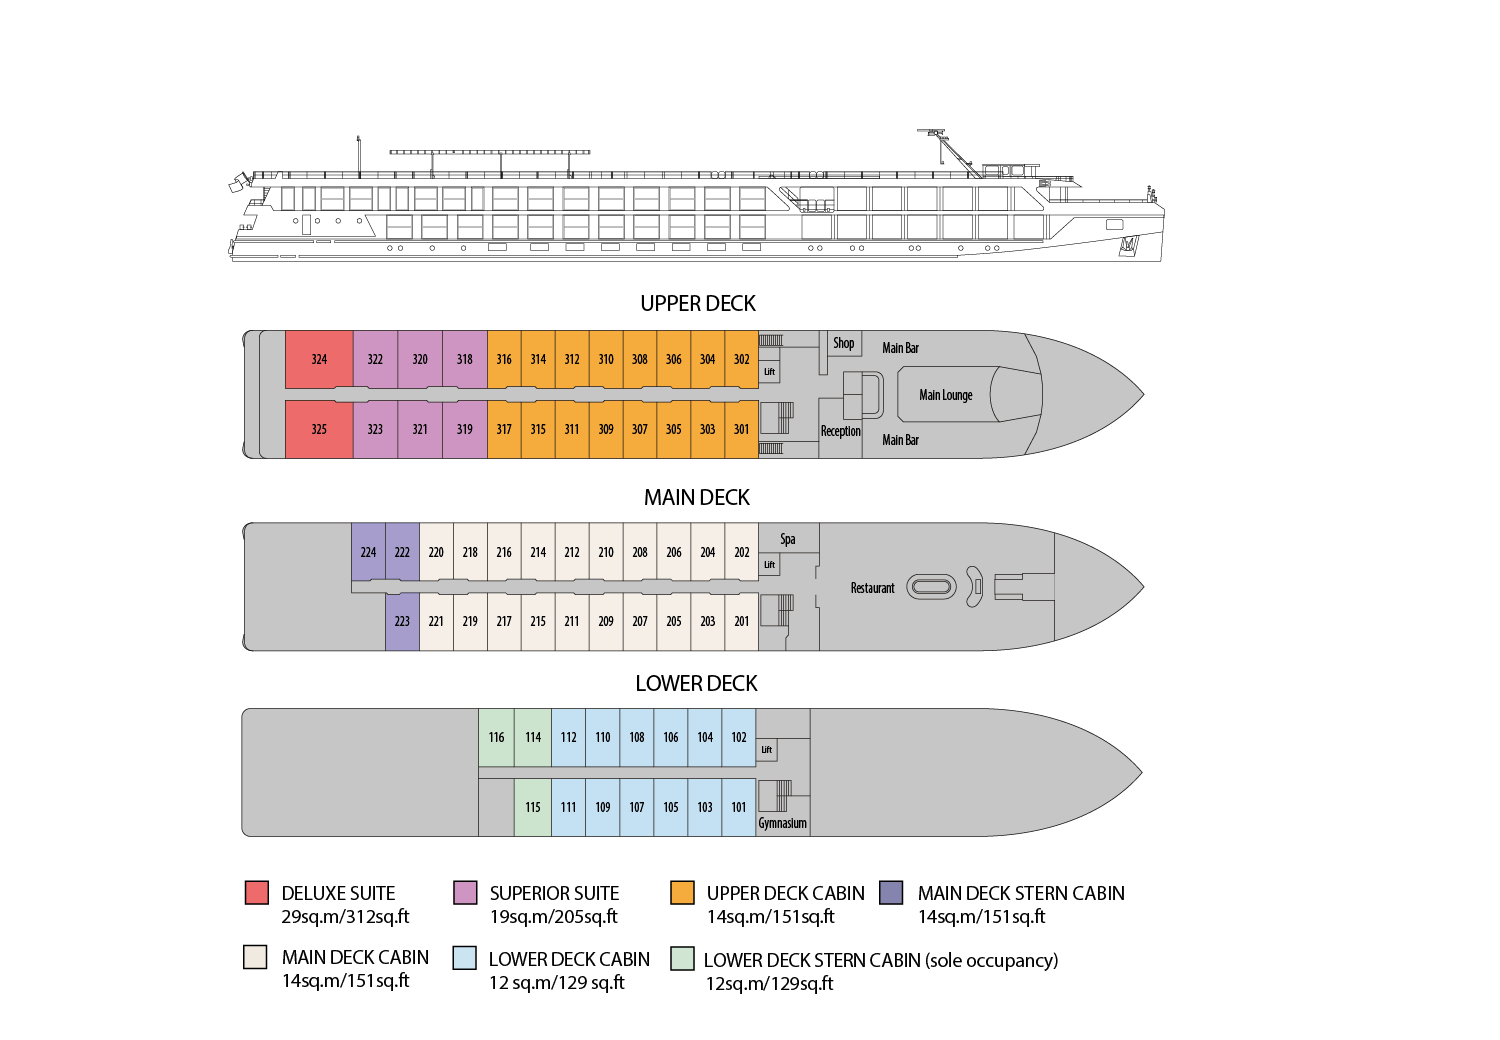 Riviera Travel - Douro Elegance - Deck Plan